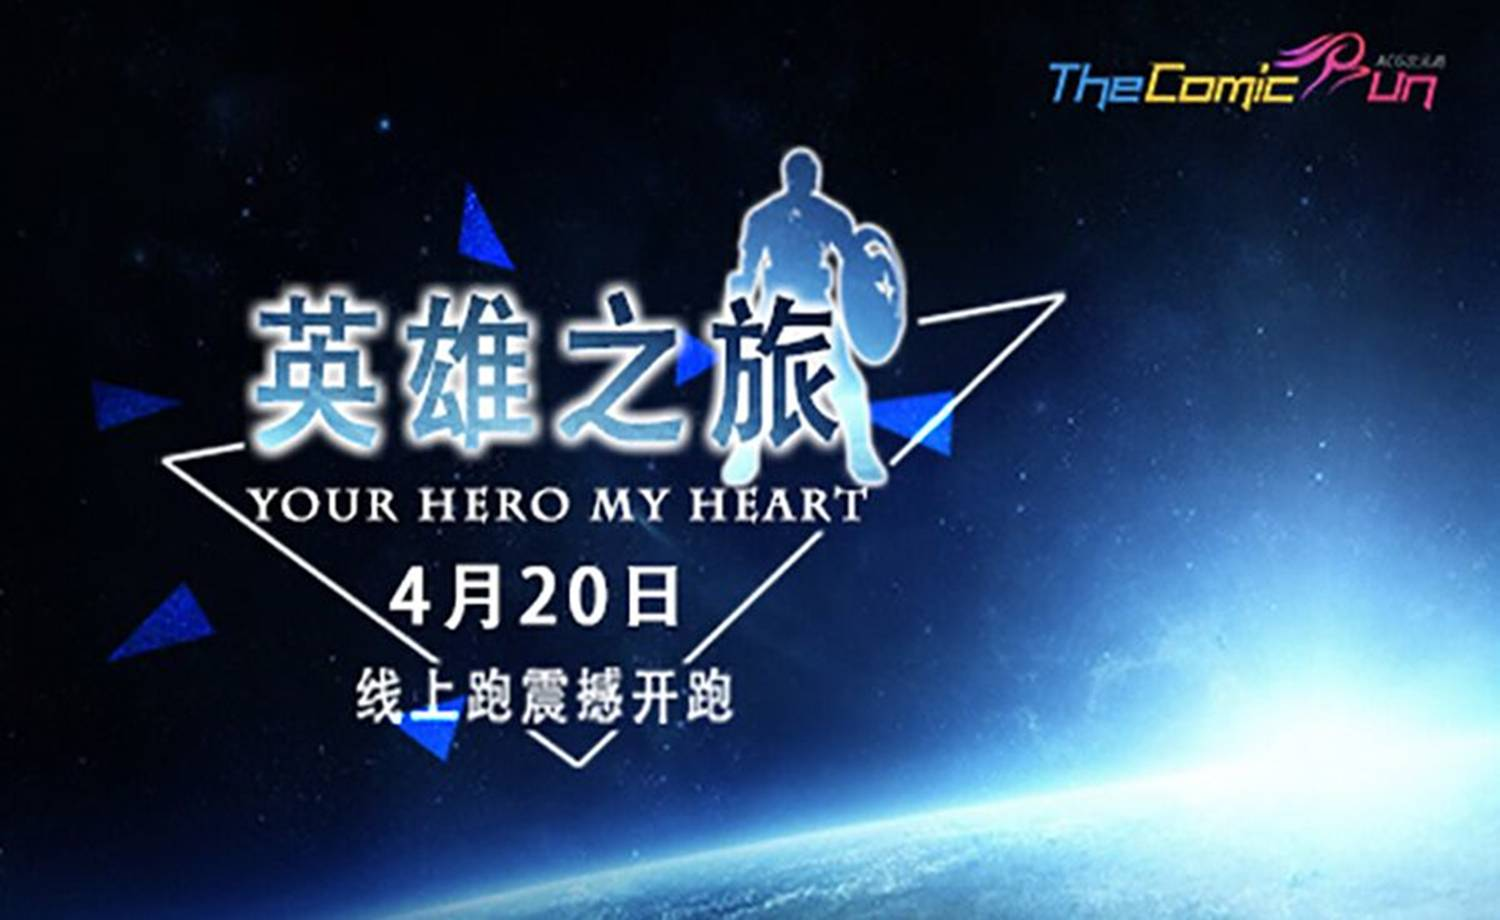 英雄之旅·Your hero my heart·线上跑